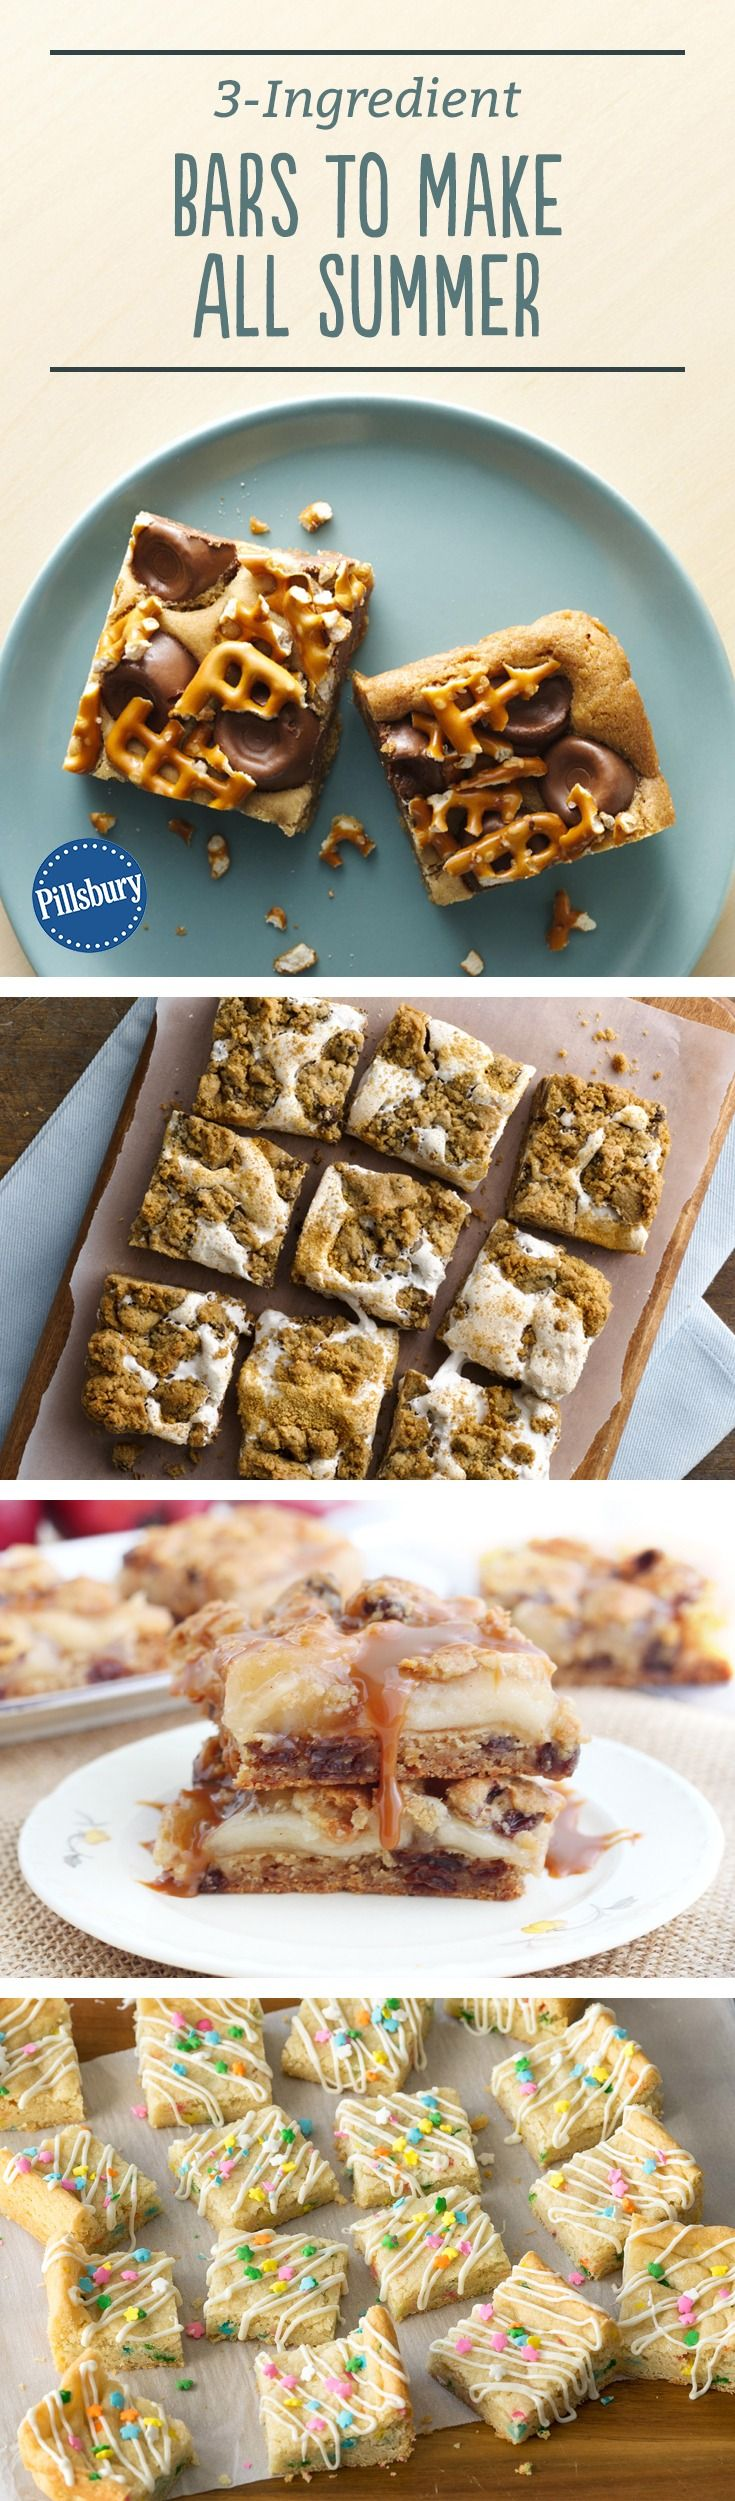 Short on time, but looking for a killer treat? These three-ingredient bars come together in no time, and they're the perfect recipes for last-minute parties or rainy day baking.